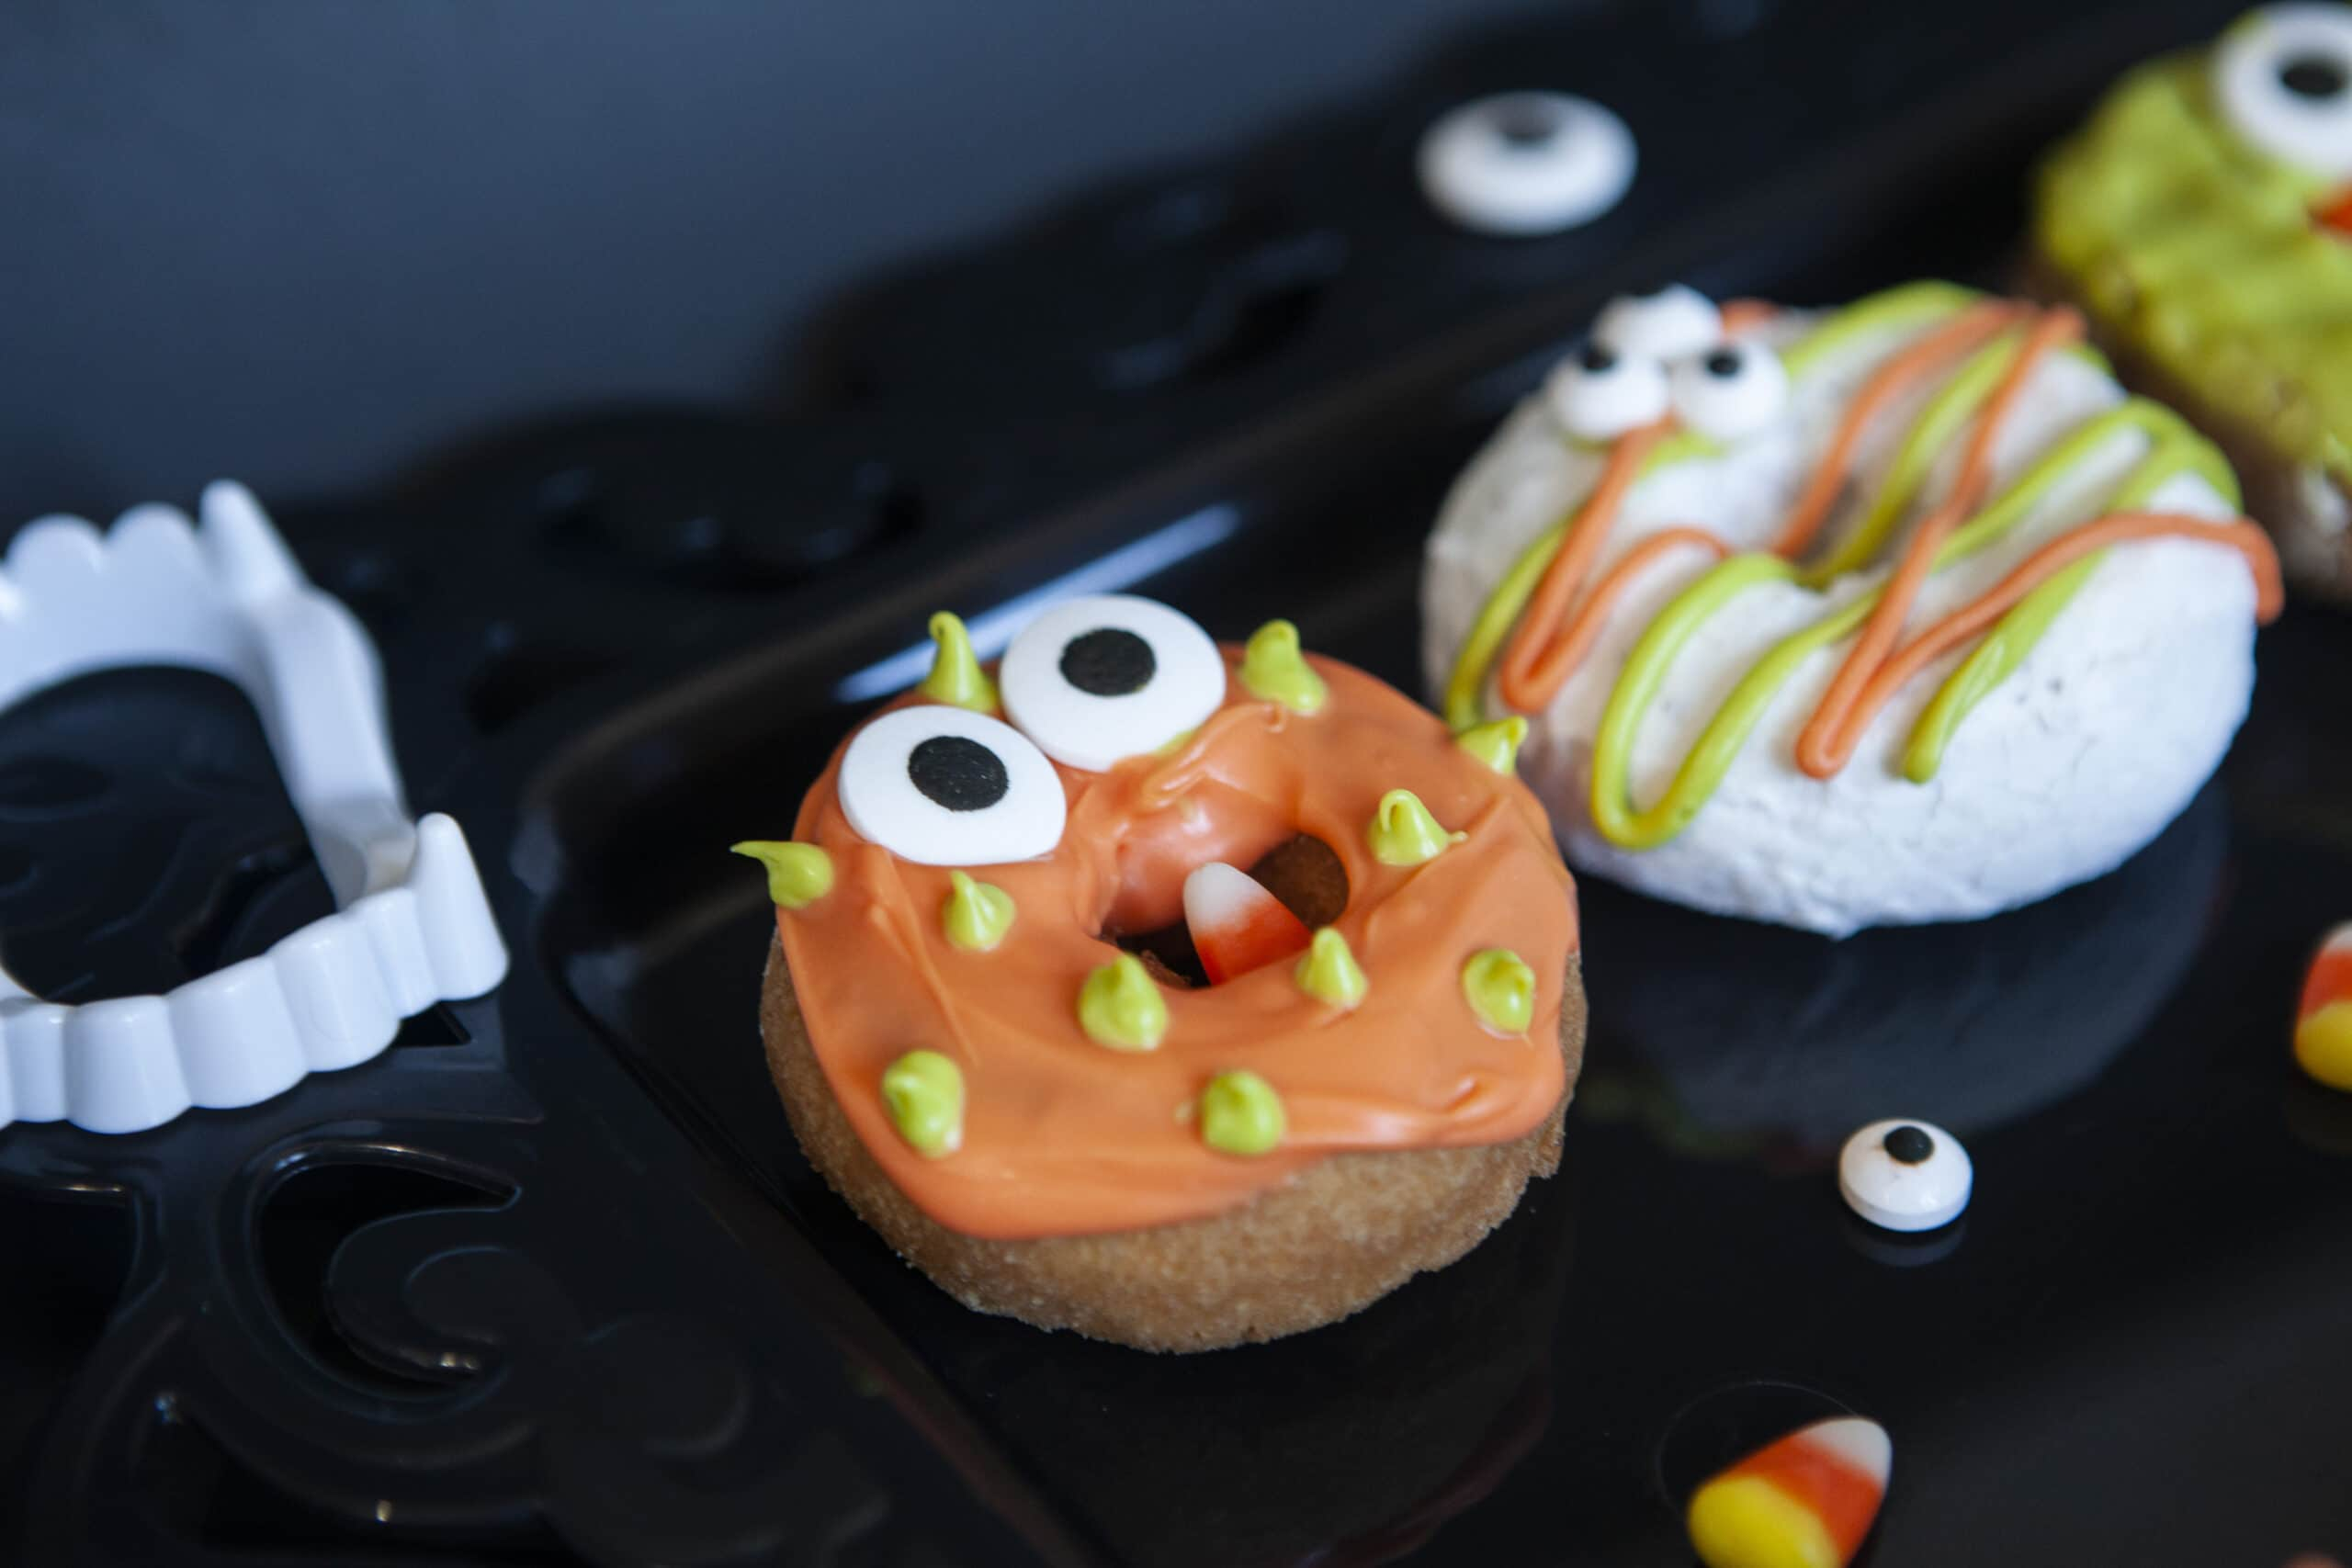 Monster Donuts Monster Candy Corn. Make these spooky cute Monster Donuts for your next Halloween event. Made with your favorite donuts as a base, you can create and decorate vampires, mummies, and other iconic edible Halloween monsters.